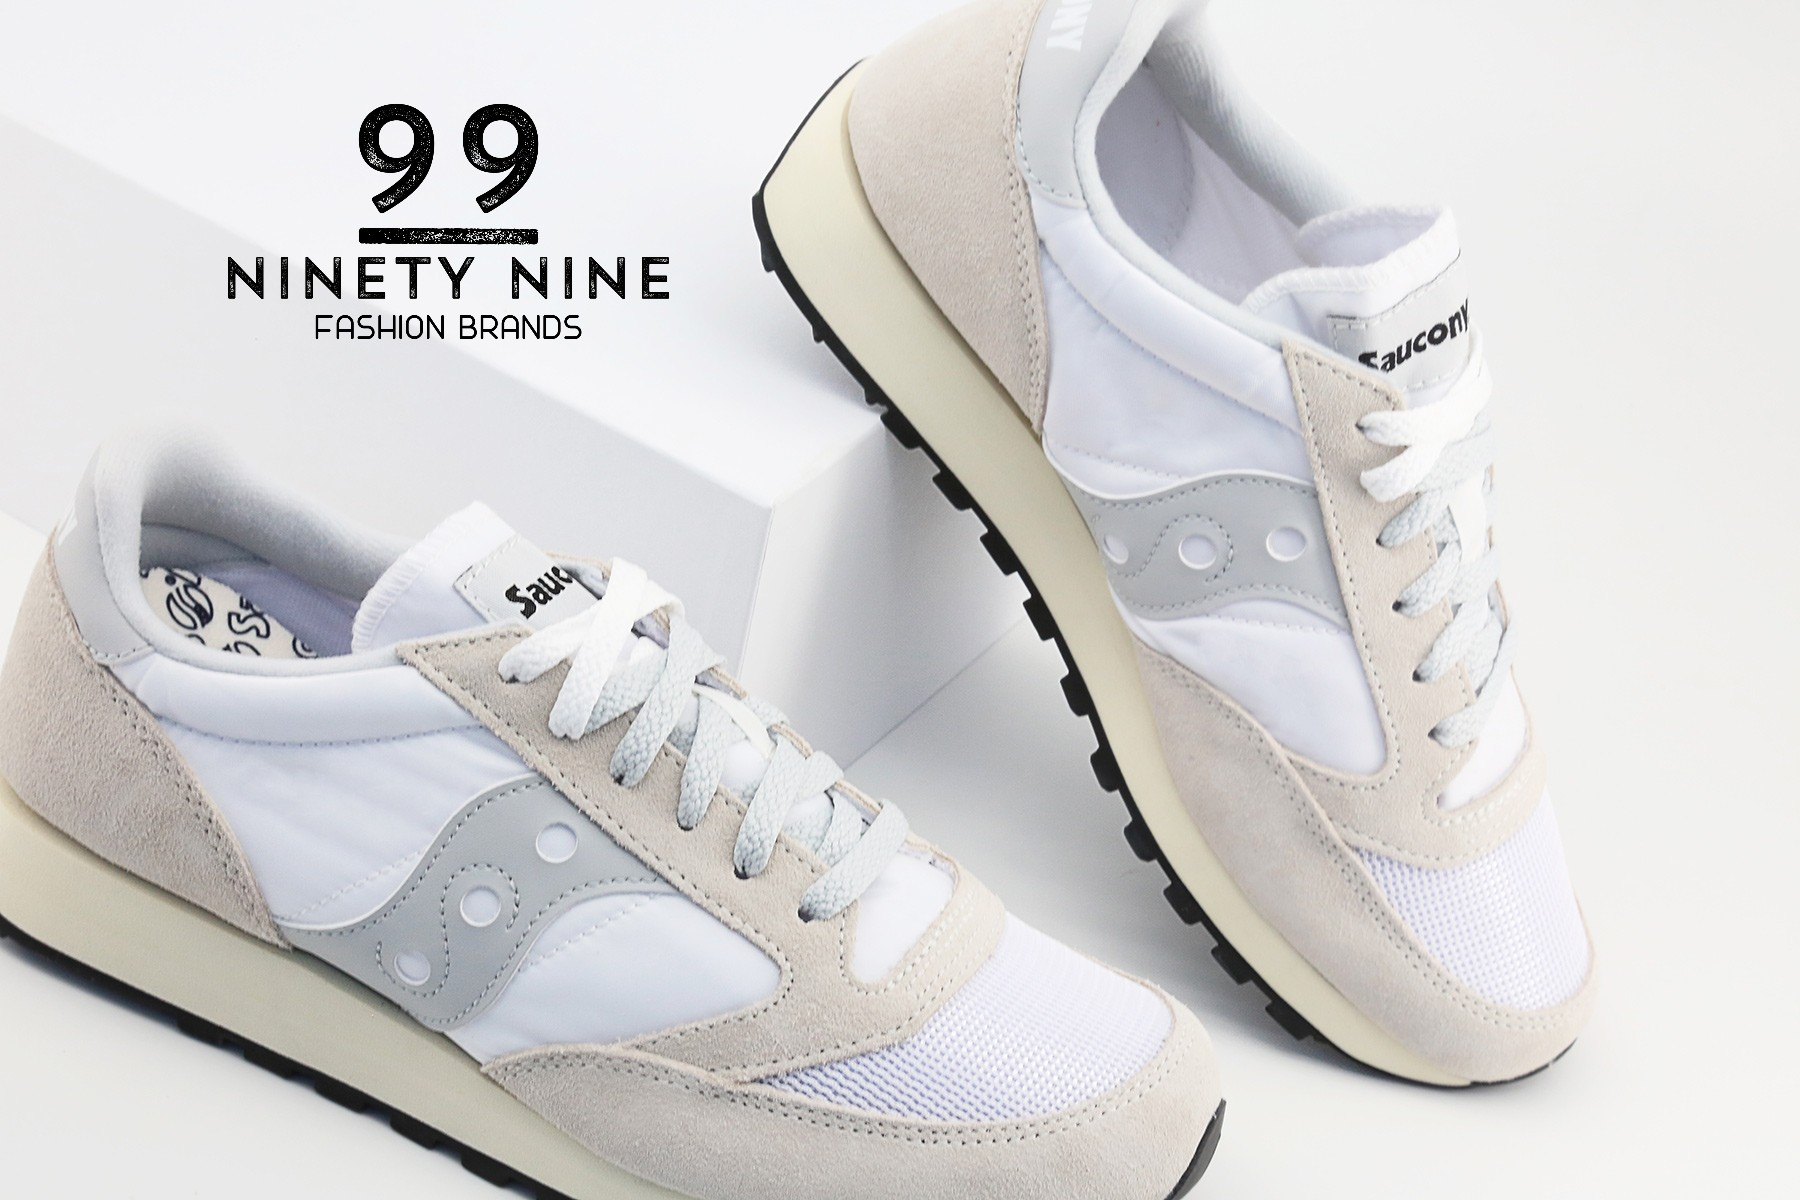 Saucony Men Sneakers on sale at 99 Fashion Brands